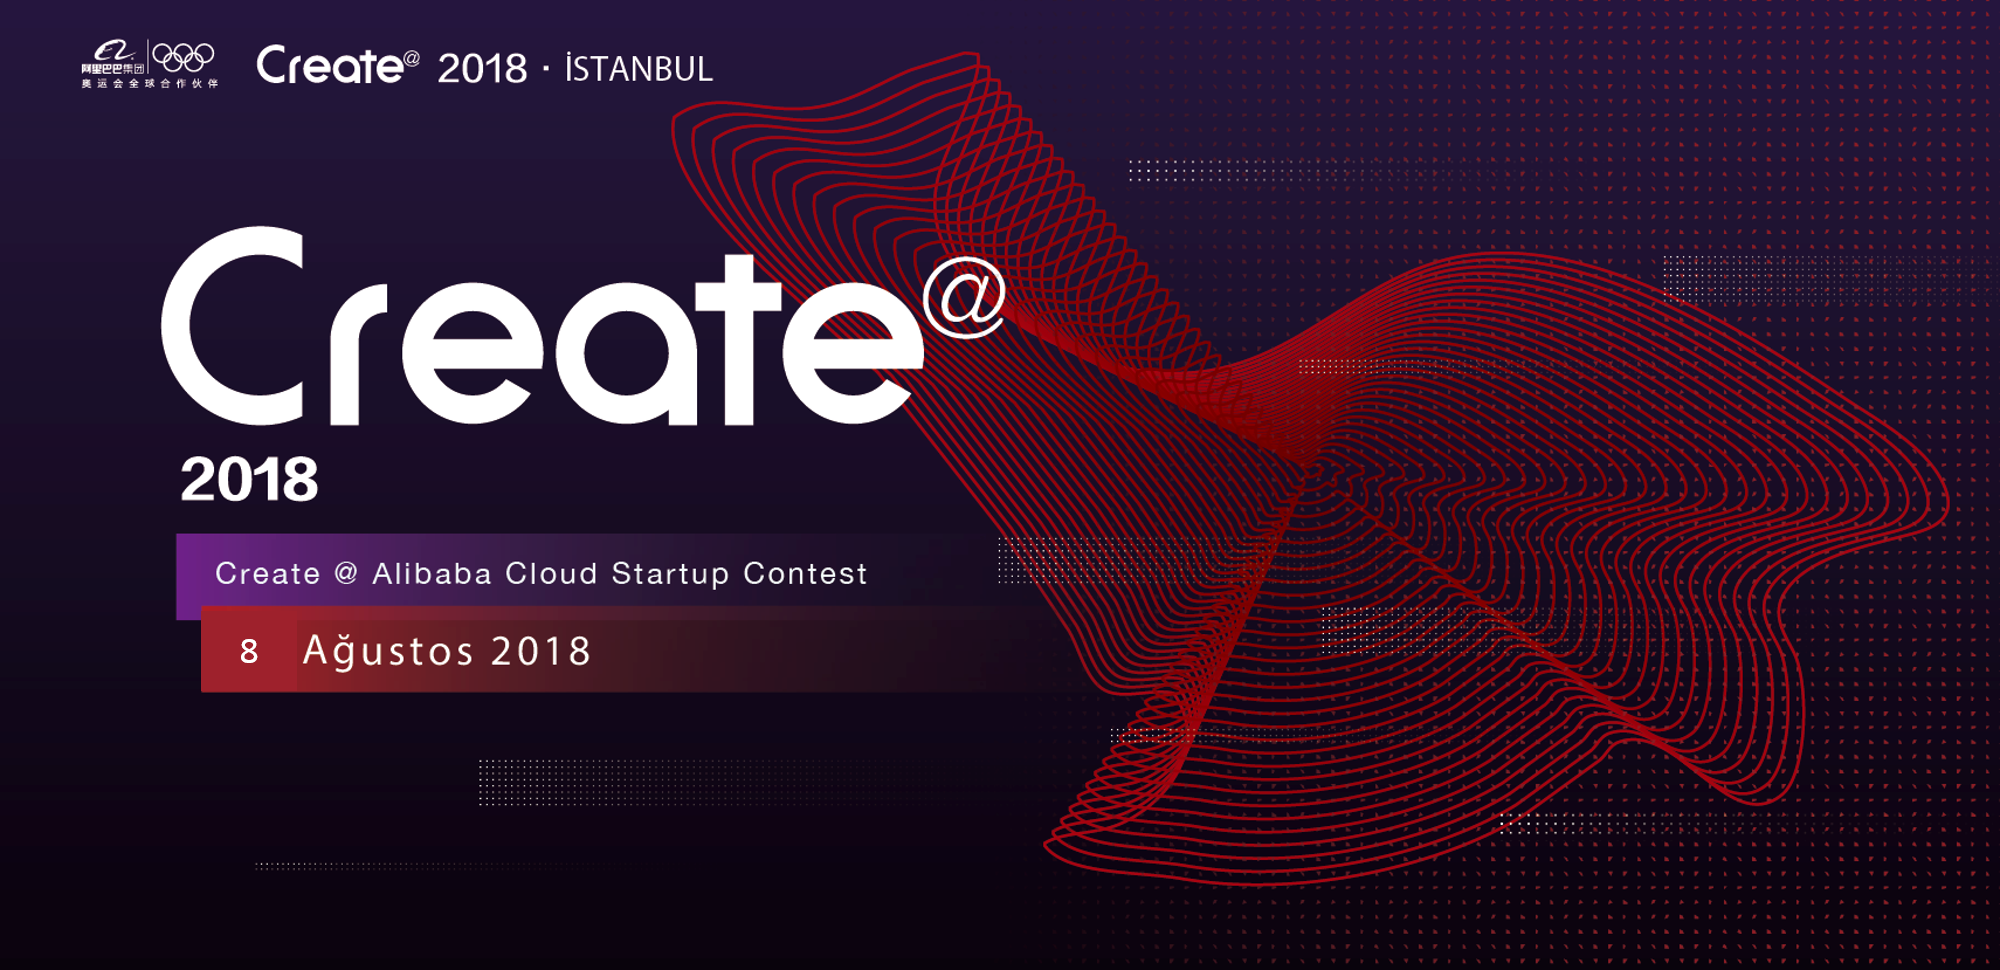 2018 Create@ Alibaba Cloud Startup Contest - Istanbul Turkey